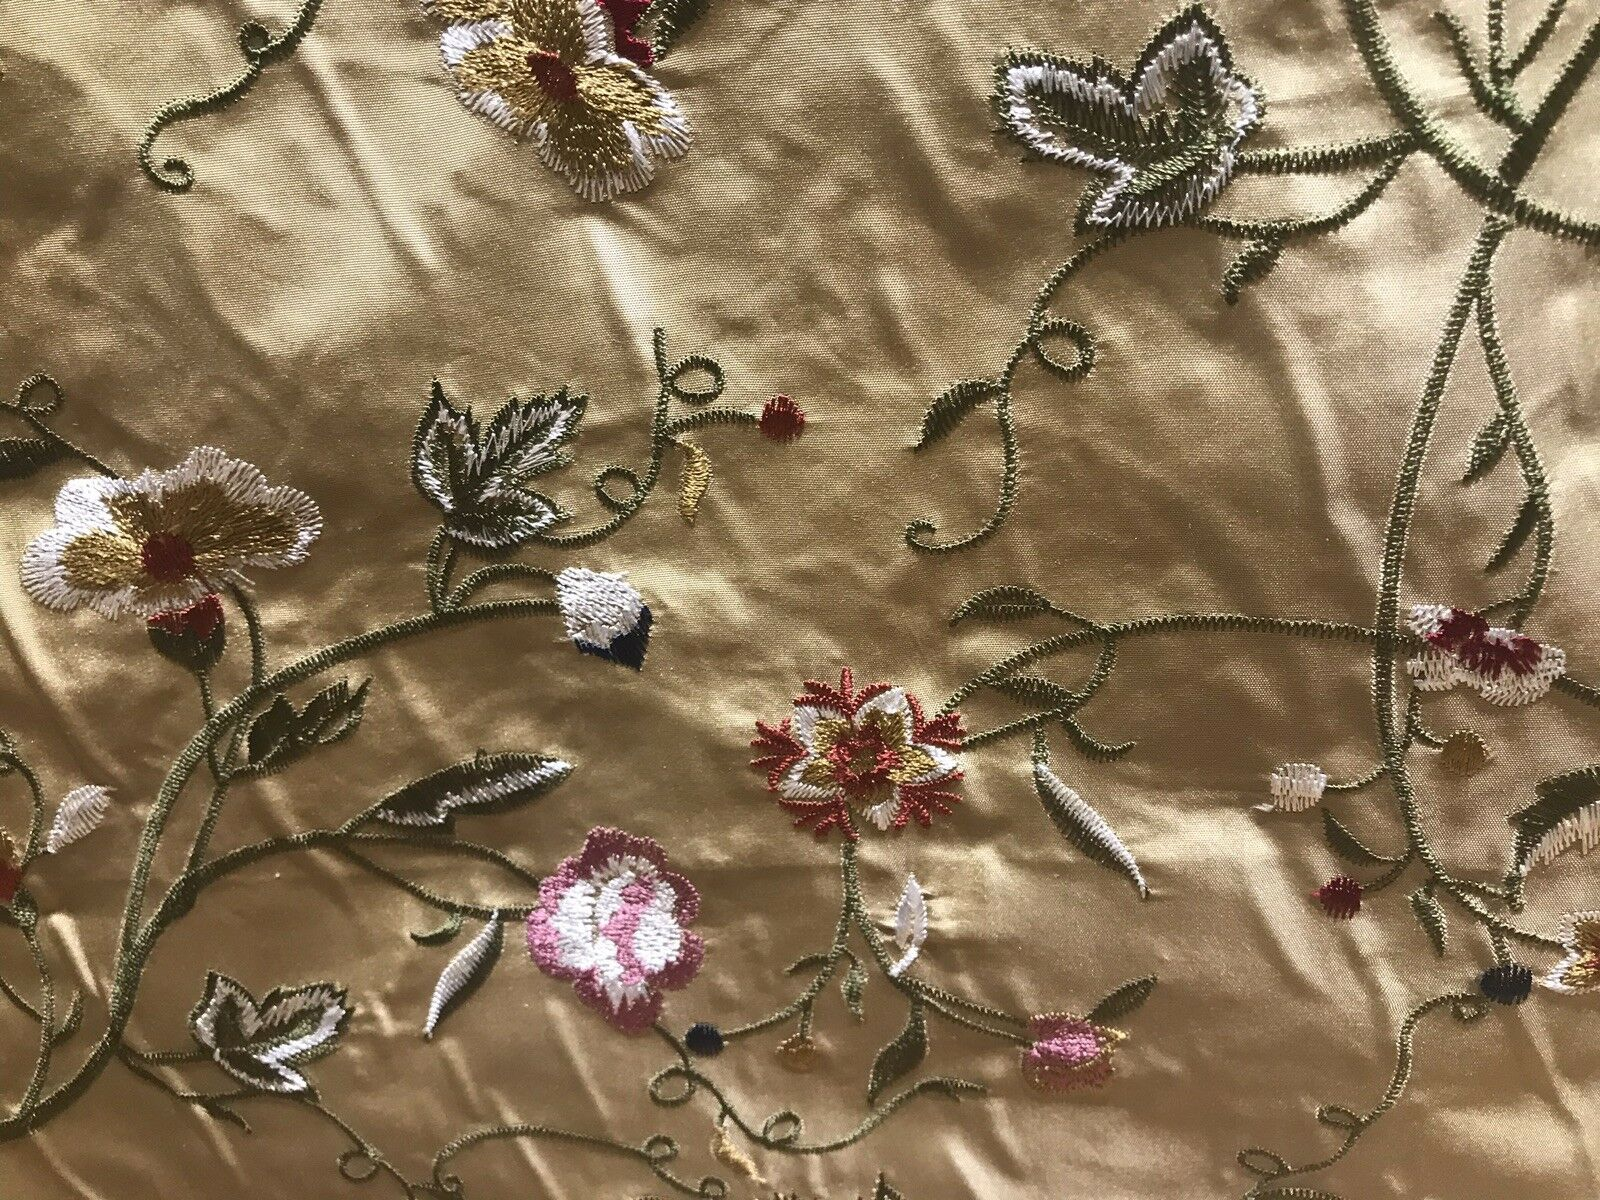 100% Lady Melody Silk Taffeta Dupioni Decorating Fabric Embroidery Floral Gold